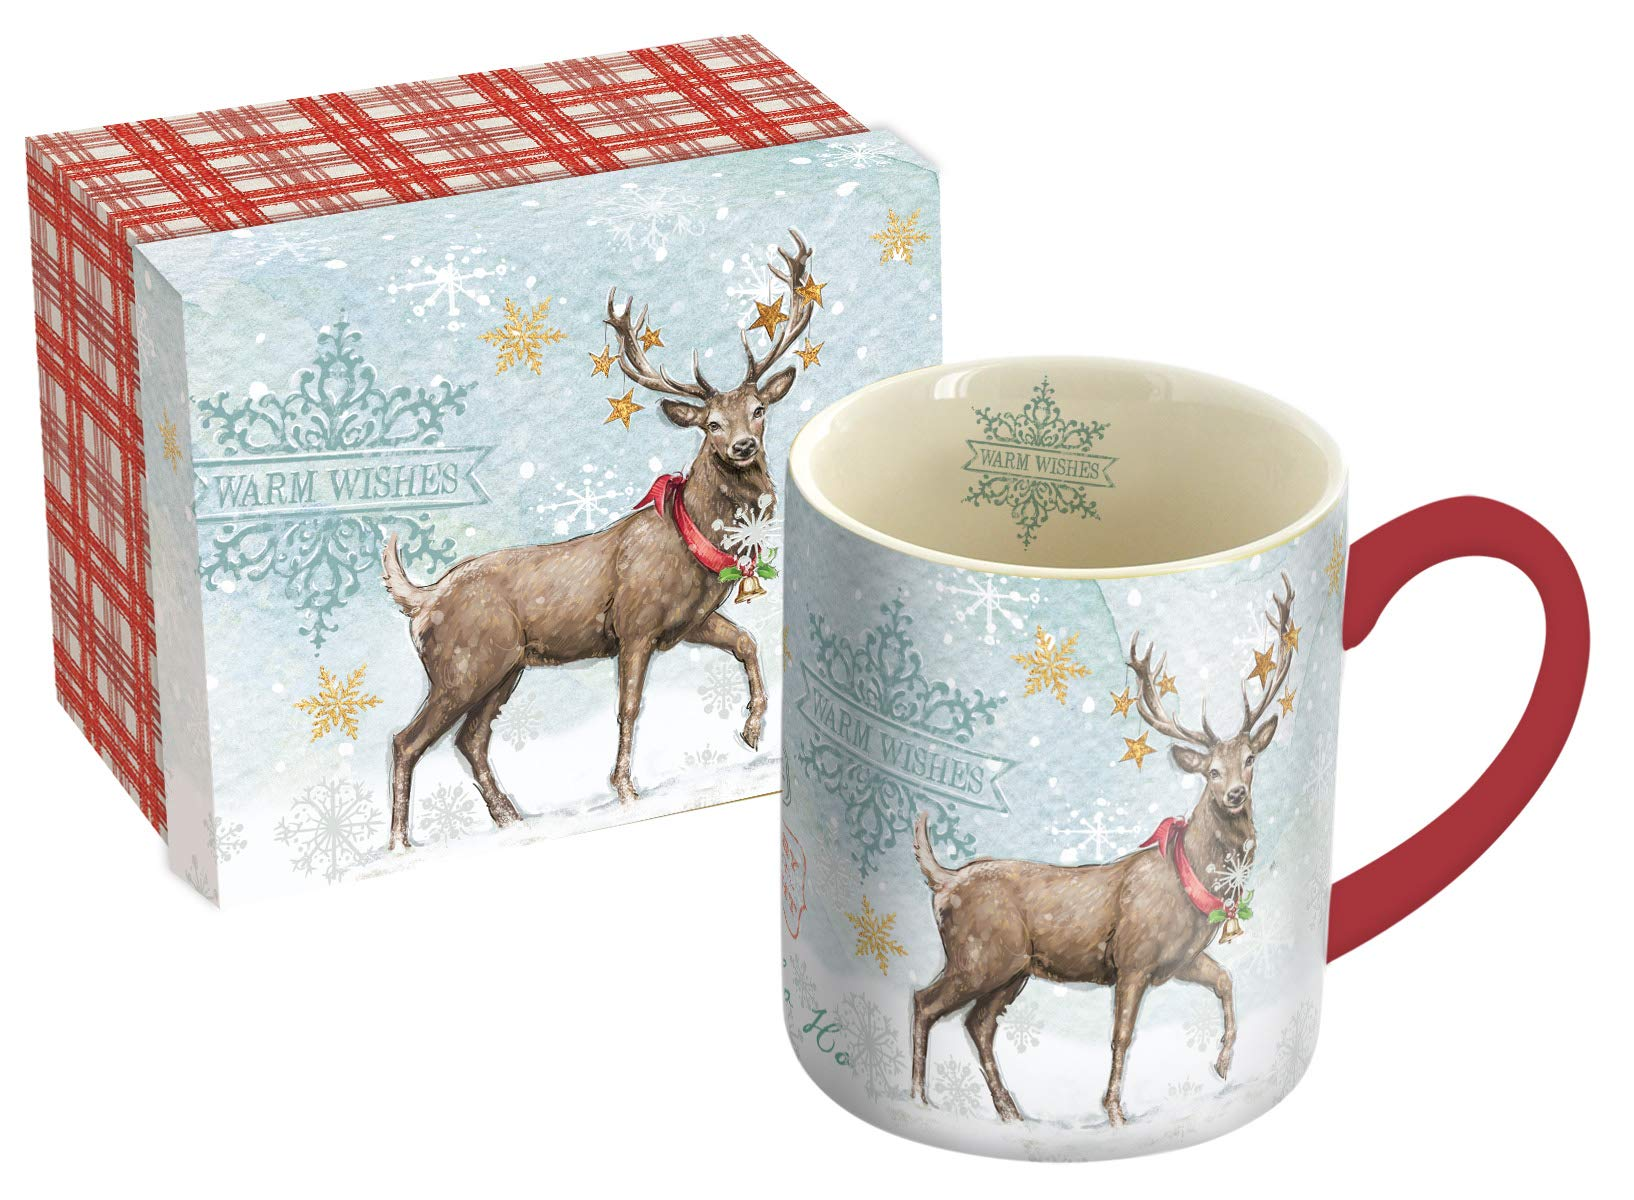 Image of Reindeer Coffee Mug with Matching Gift Box